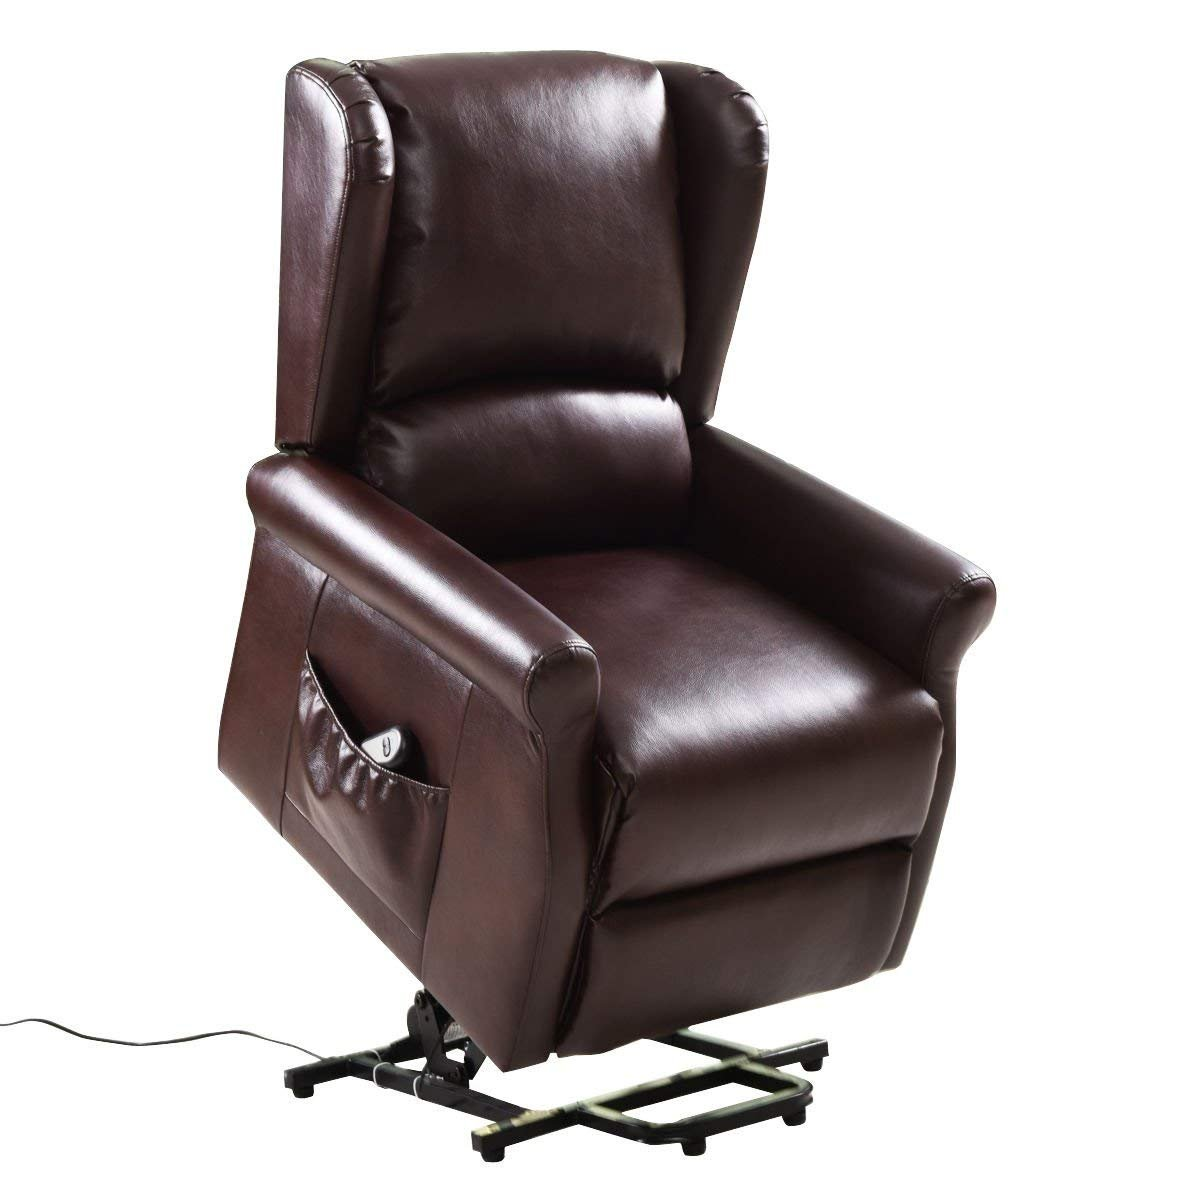 Amazon com giantex electric lift chair power lift reclining for living room bedroom elder people with remote control red brown kitchen dining